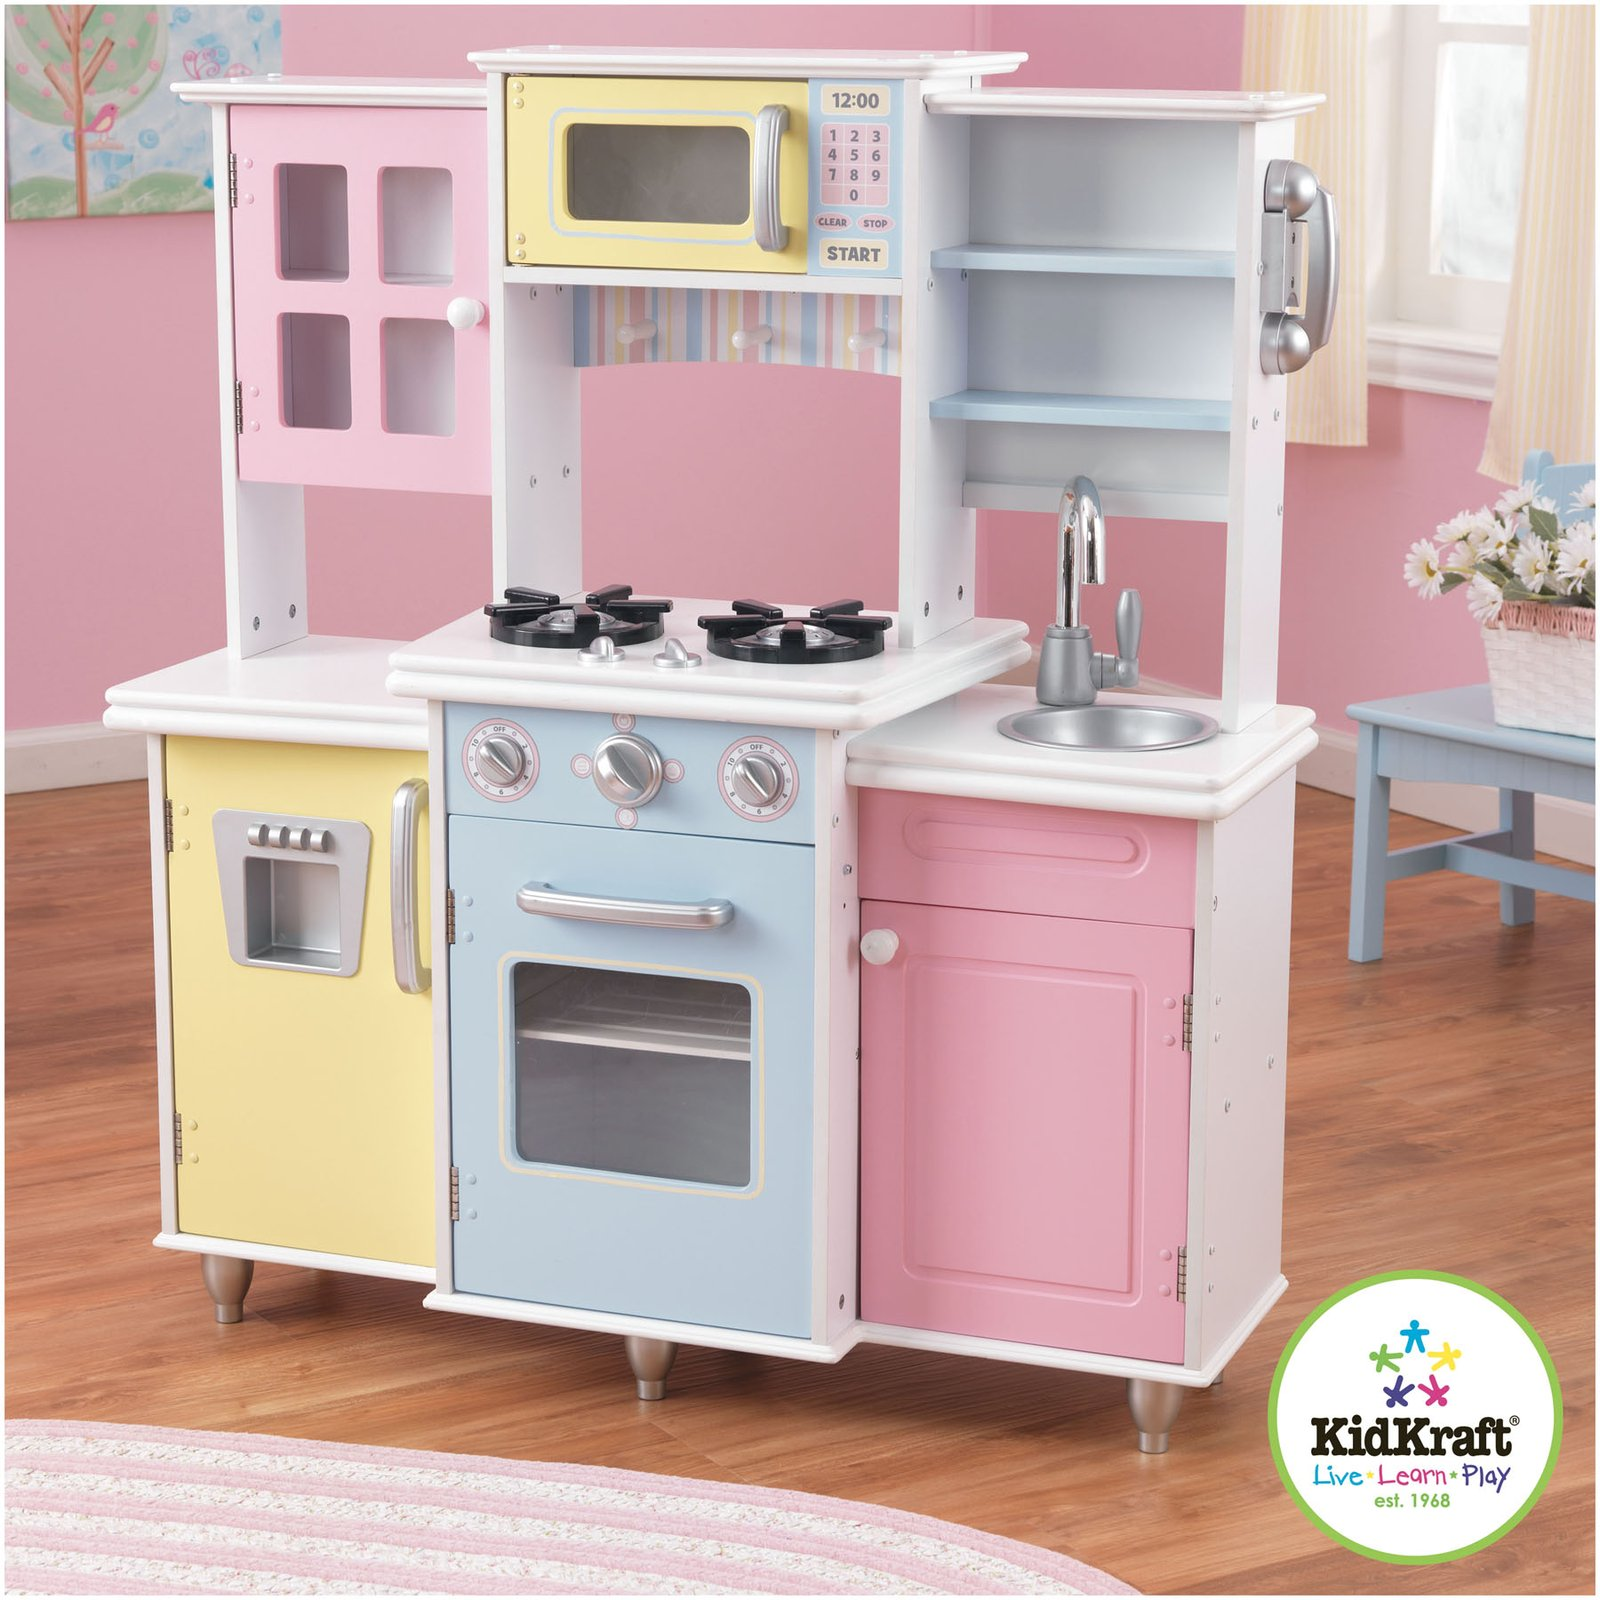 kidkraft kitchen pink kitchen ideas